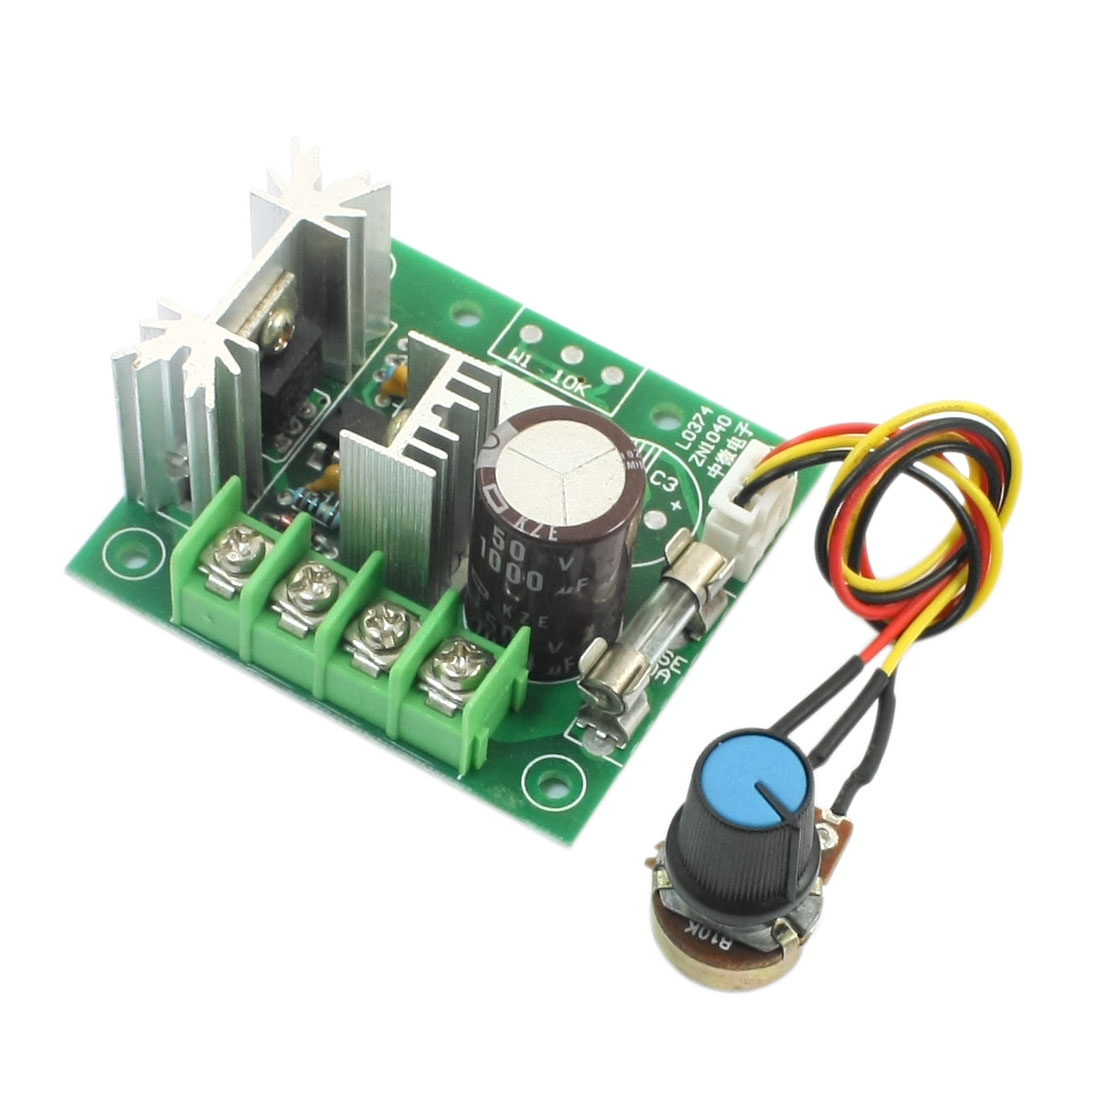 DC 5-15V 200W Pulse Width Modulation Rotary Adjustable B10K Potentiometer Knob PWM Motor Speed Controller Switch Governor Module 8""